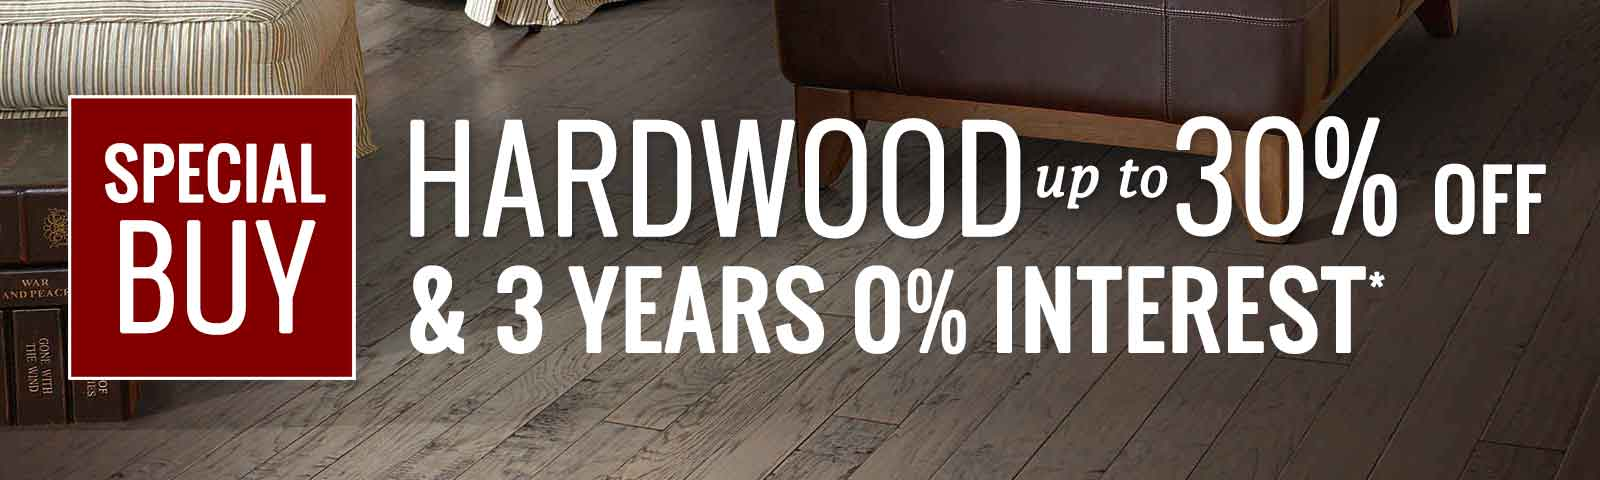 Pittsburgh hardwood flooring sale